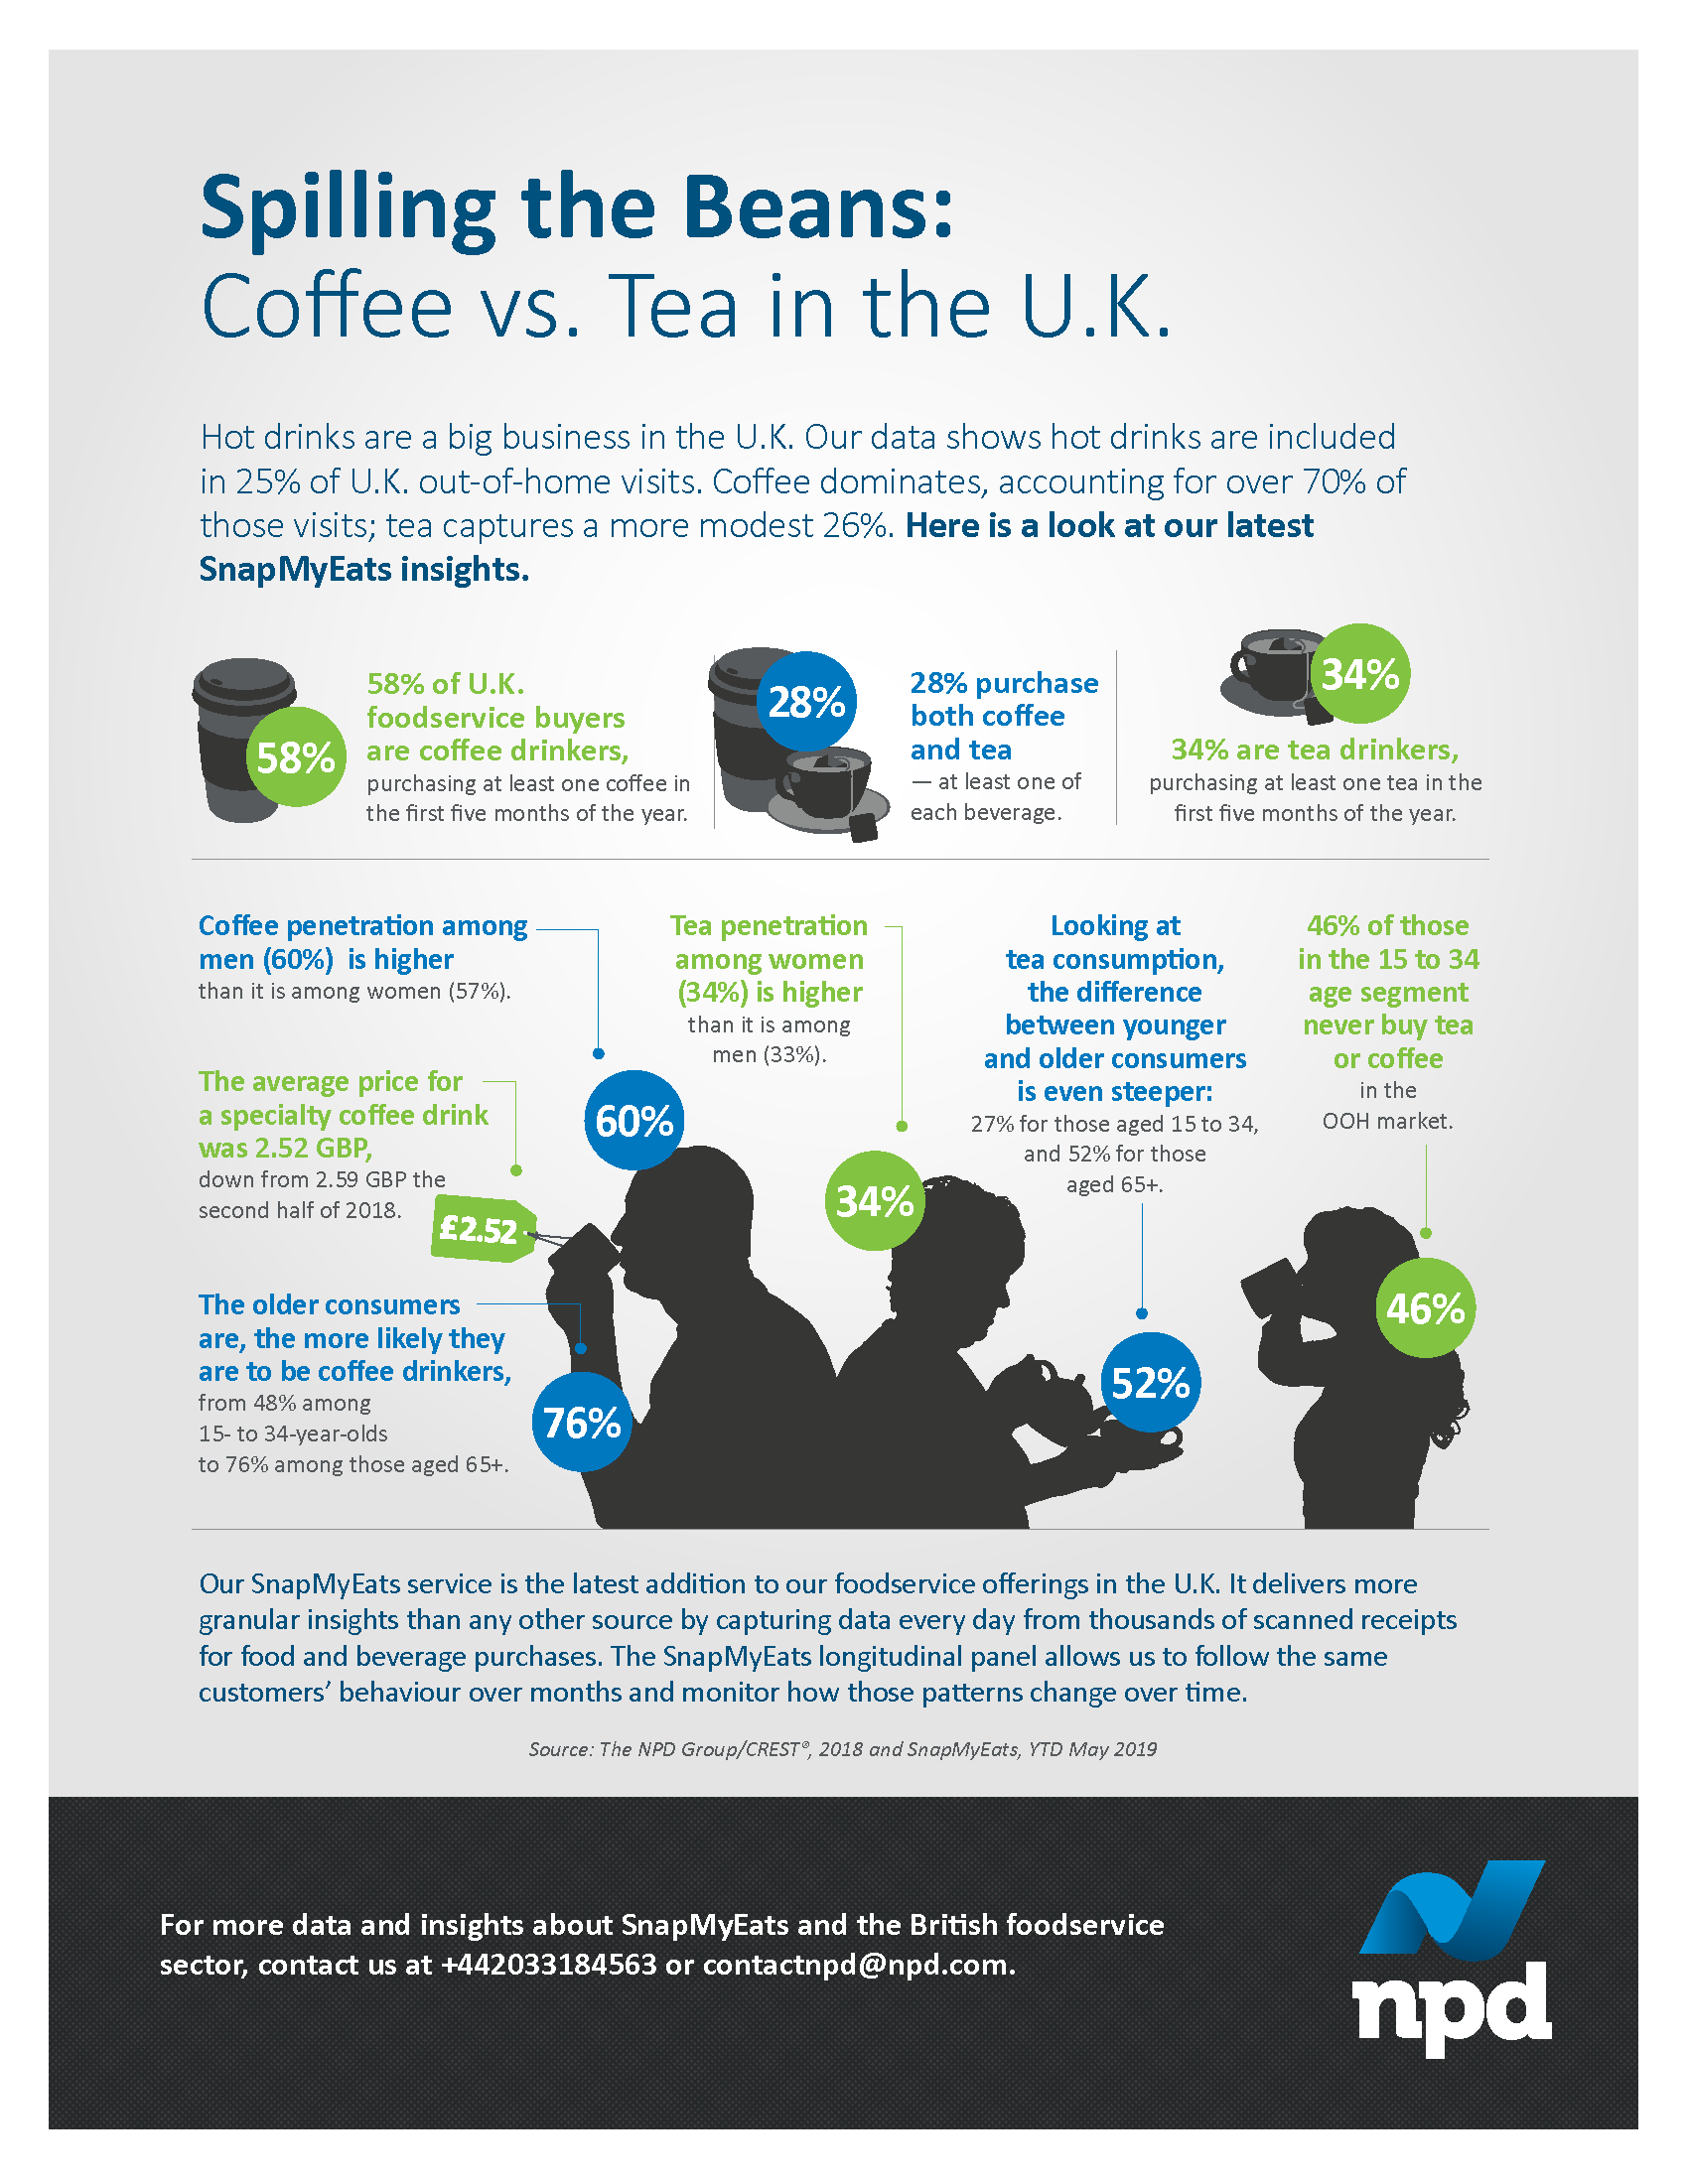 Hot drinks are a big business in the U.K. Our data shows hot drinks are included in 25% of U.K. out-of-home visits.